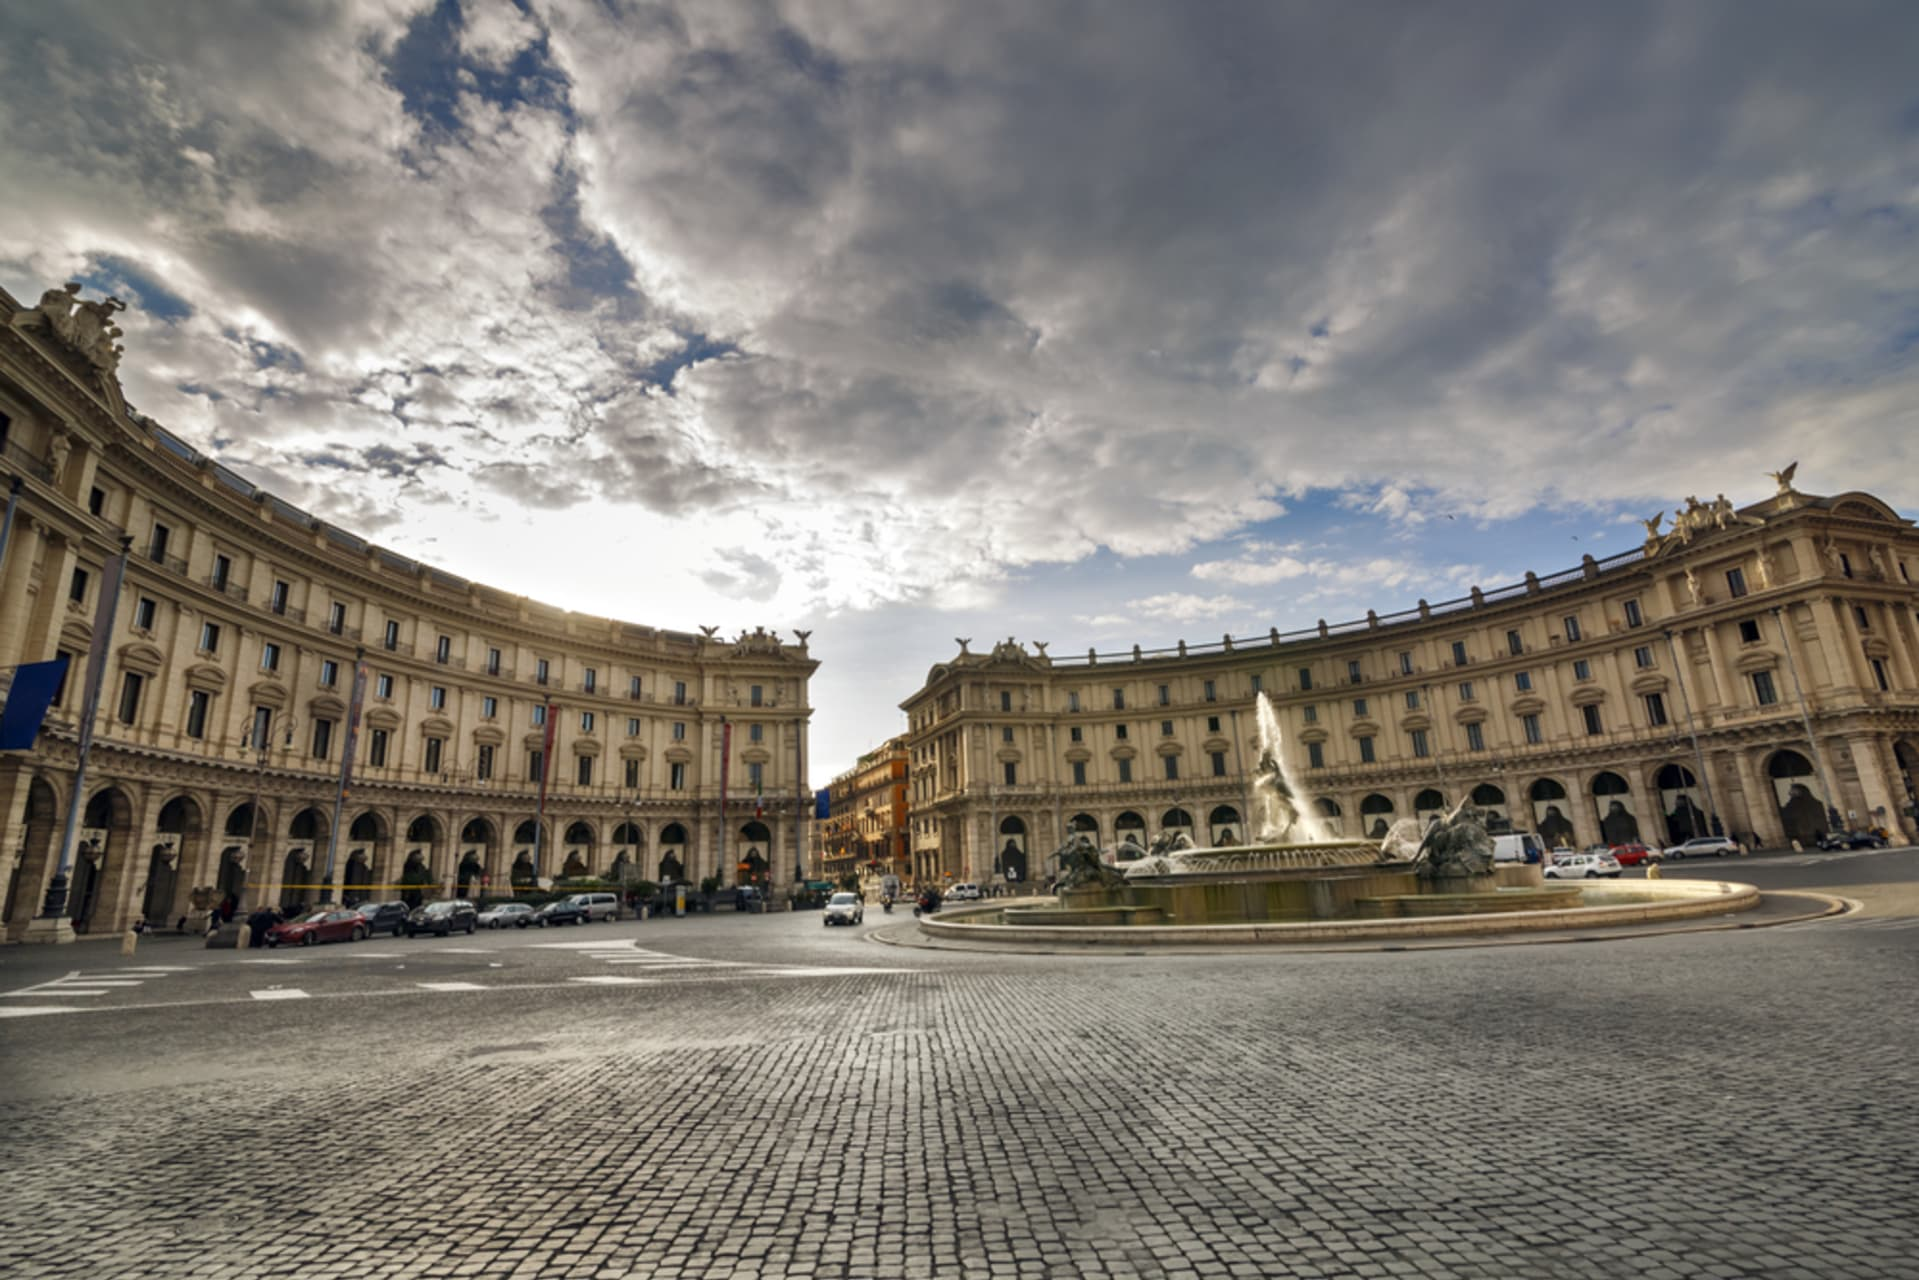 Rome - Art, Shopping And Opera In Downtown Rome